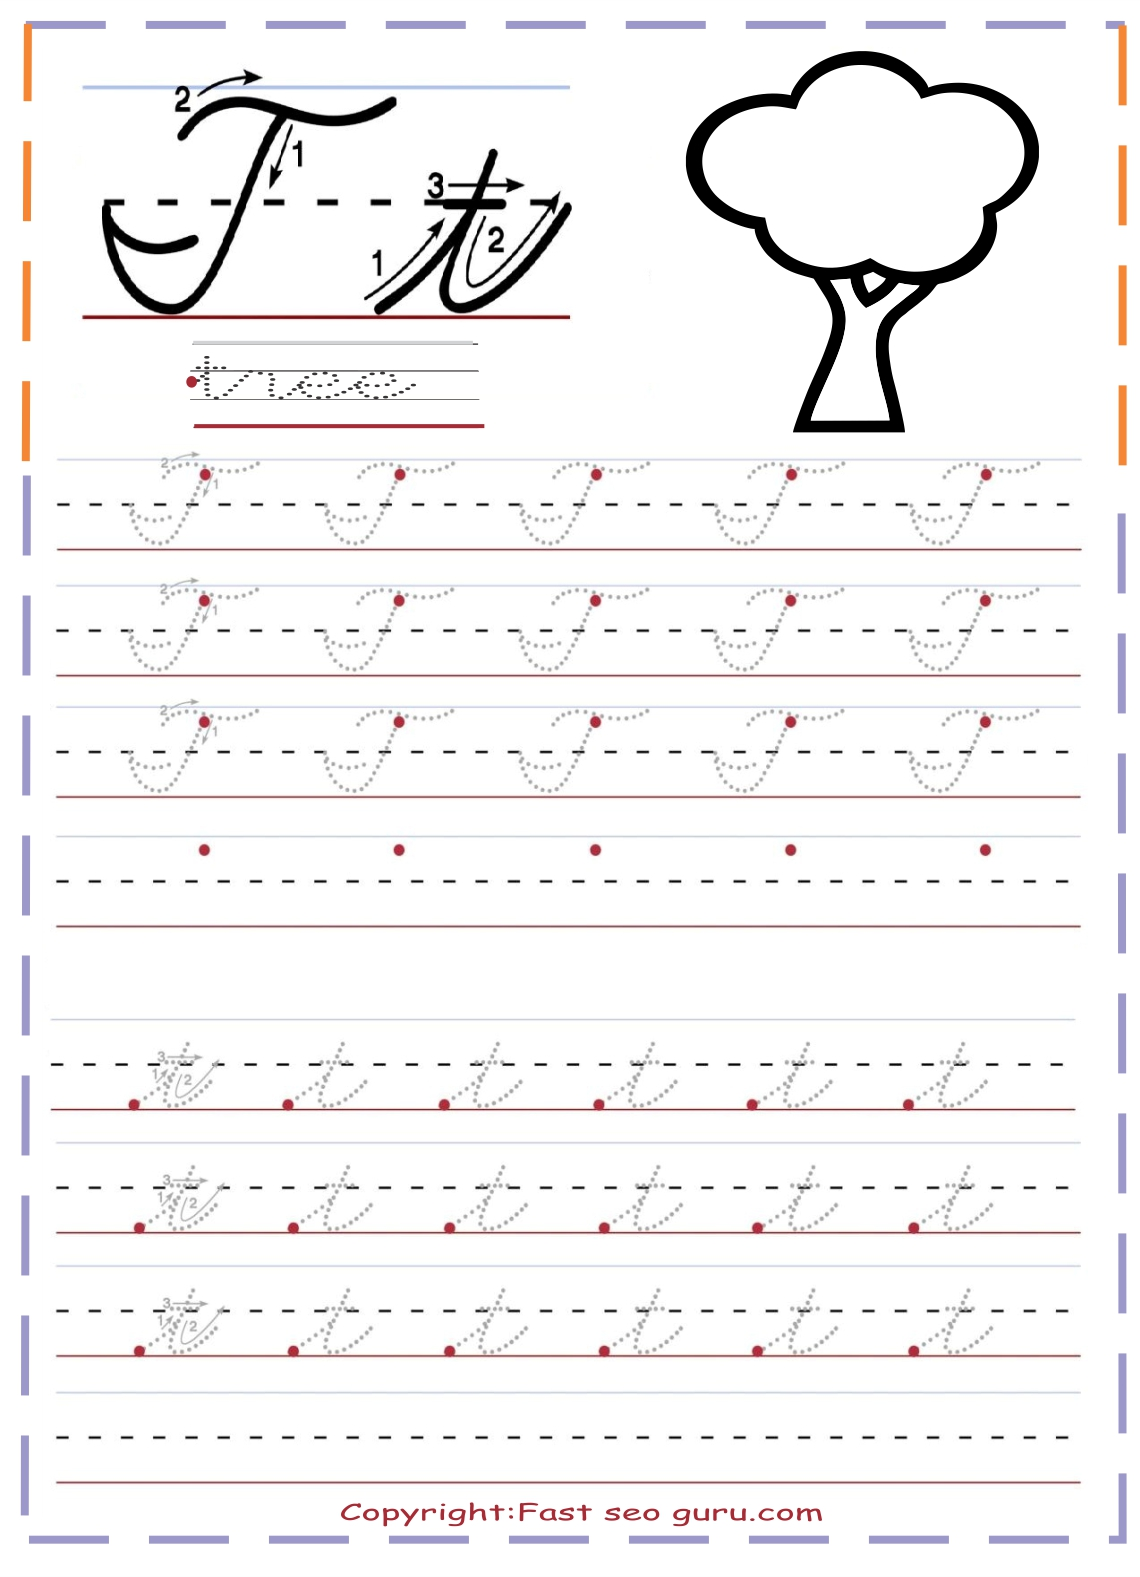 Cursive Handwriting Tracing Worksheets Letter T For Tree